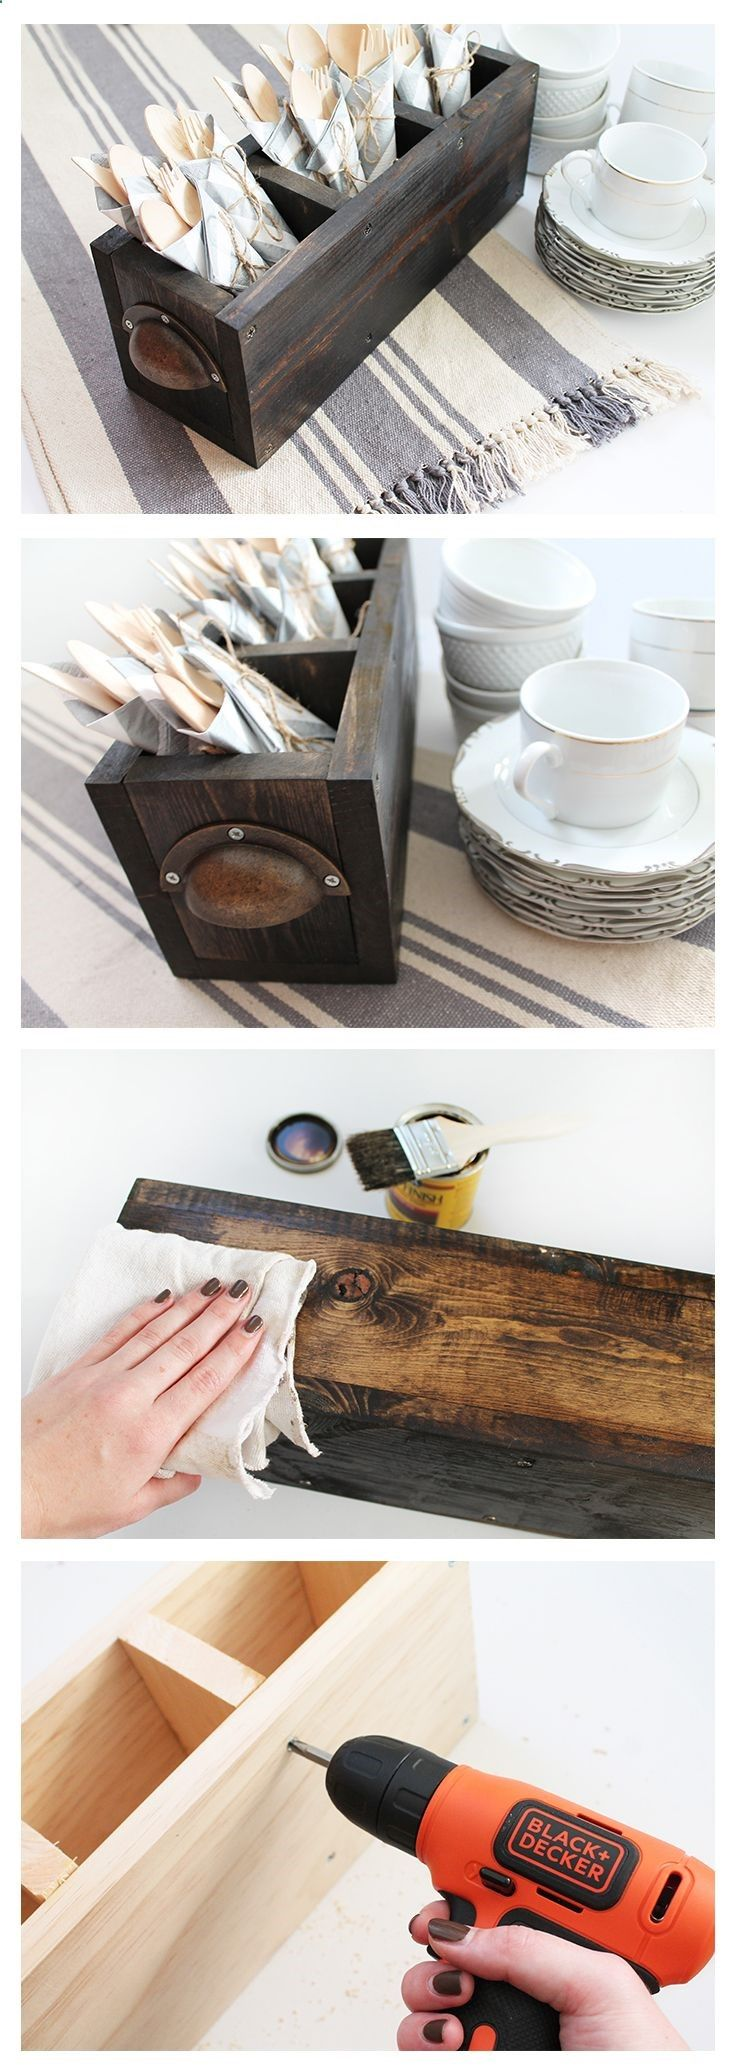 Silverware caddy for hosting the holidays - heres how to ...